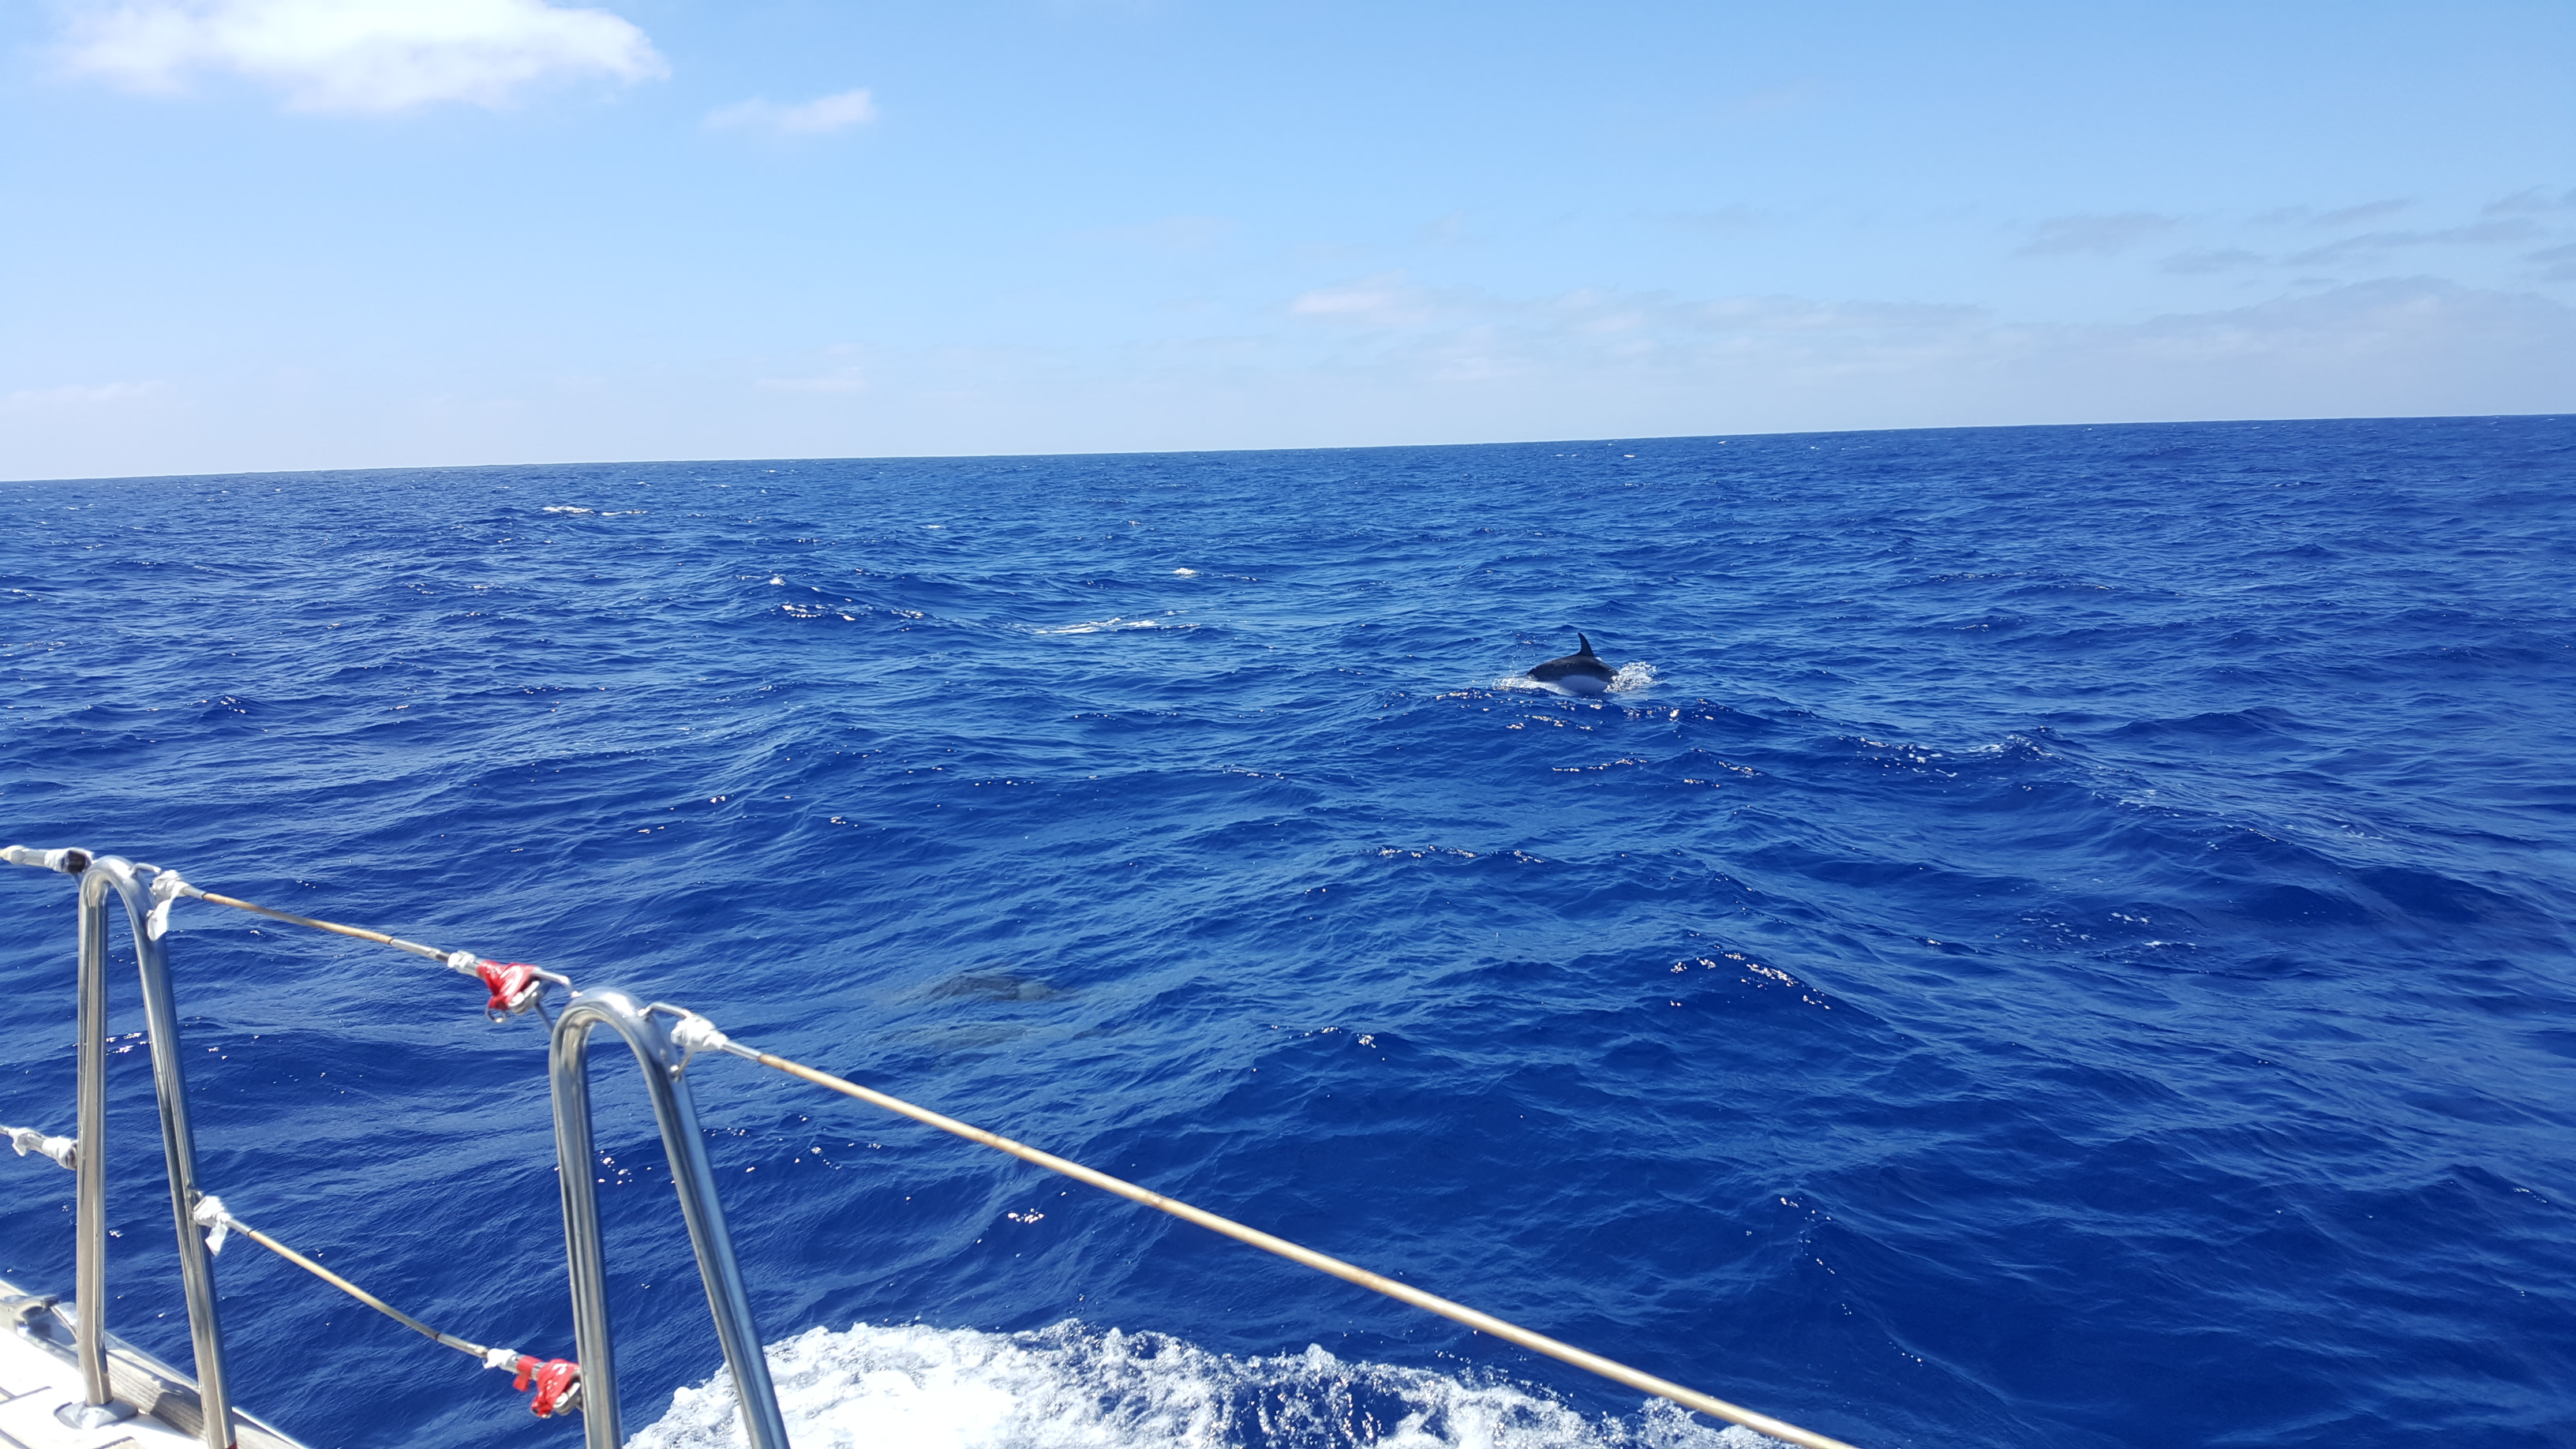 Atlantic dolphins off the side of the boat, they have black backs and much lighter undersides. The ocean is a gorgeous bright blue